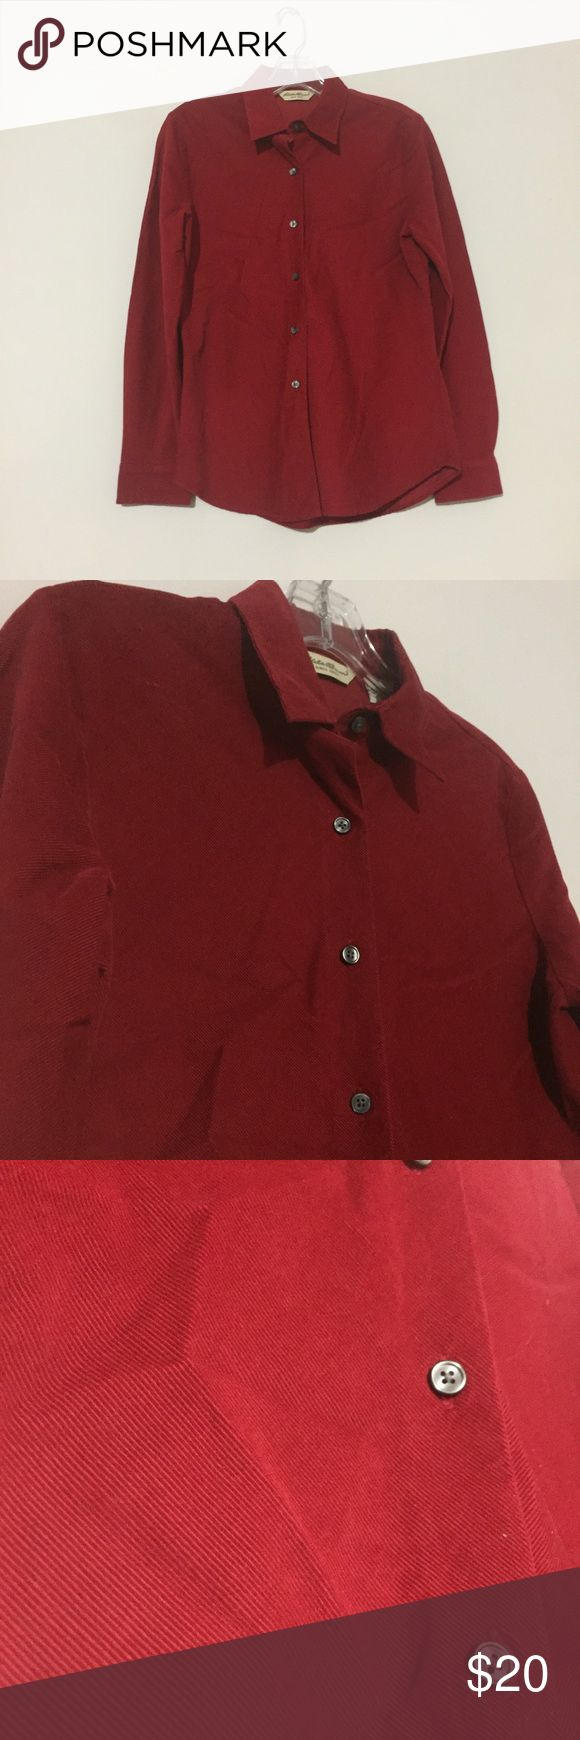 Women's Eddie Bauer Wonderful condition. Corduroy material Button Down women's top with silver buttons. Would be beautiful for the holidays. Eddie Bauer size S. Eddie Bauer Tops Button Down Shirts